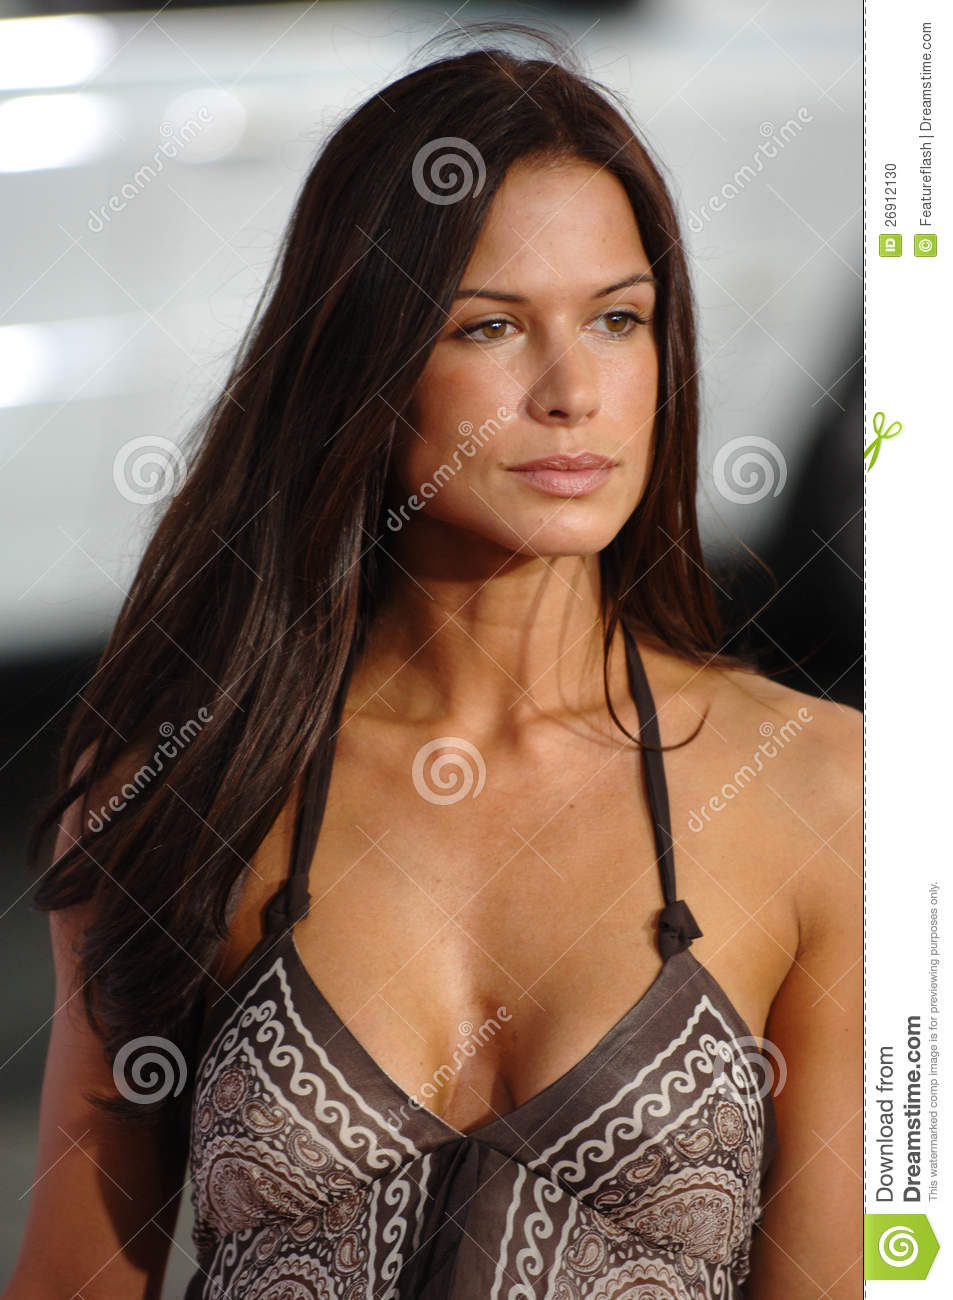 Tits Pictures Rhona Mitra naked photo 2017